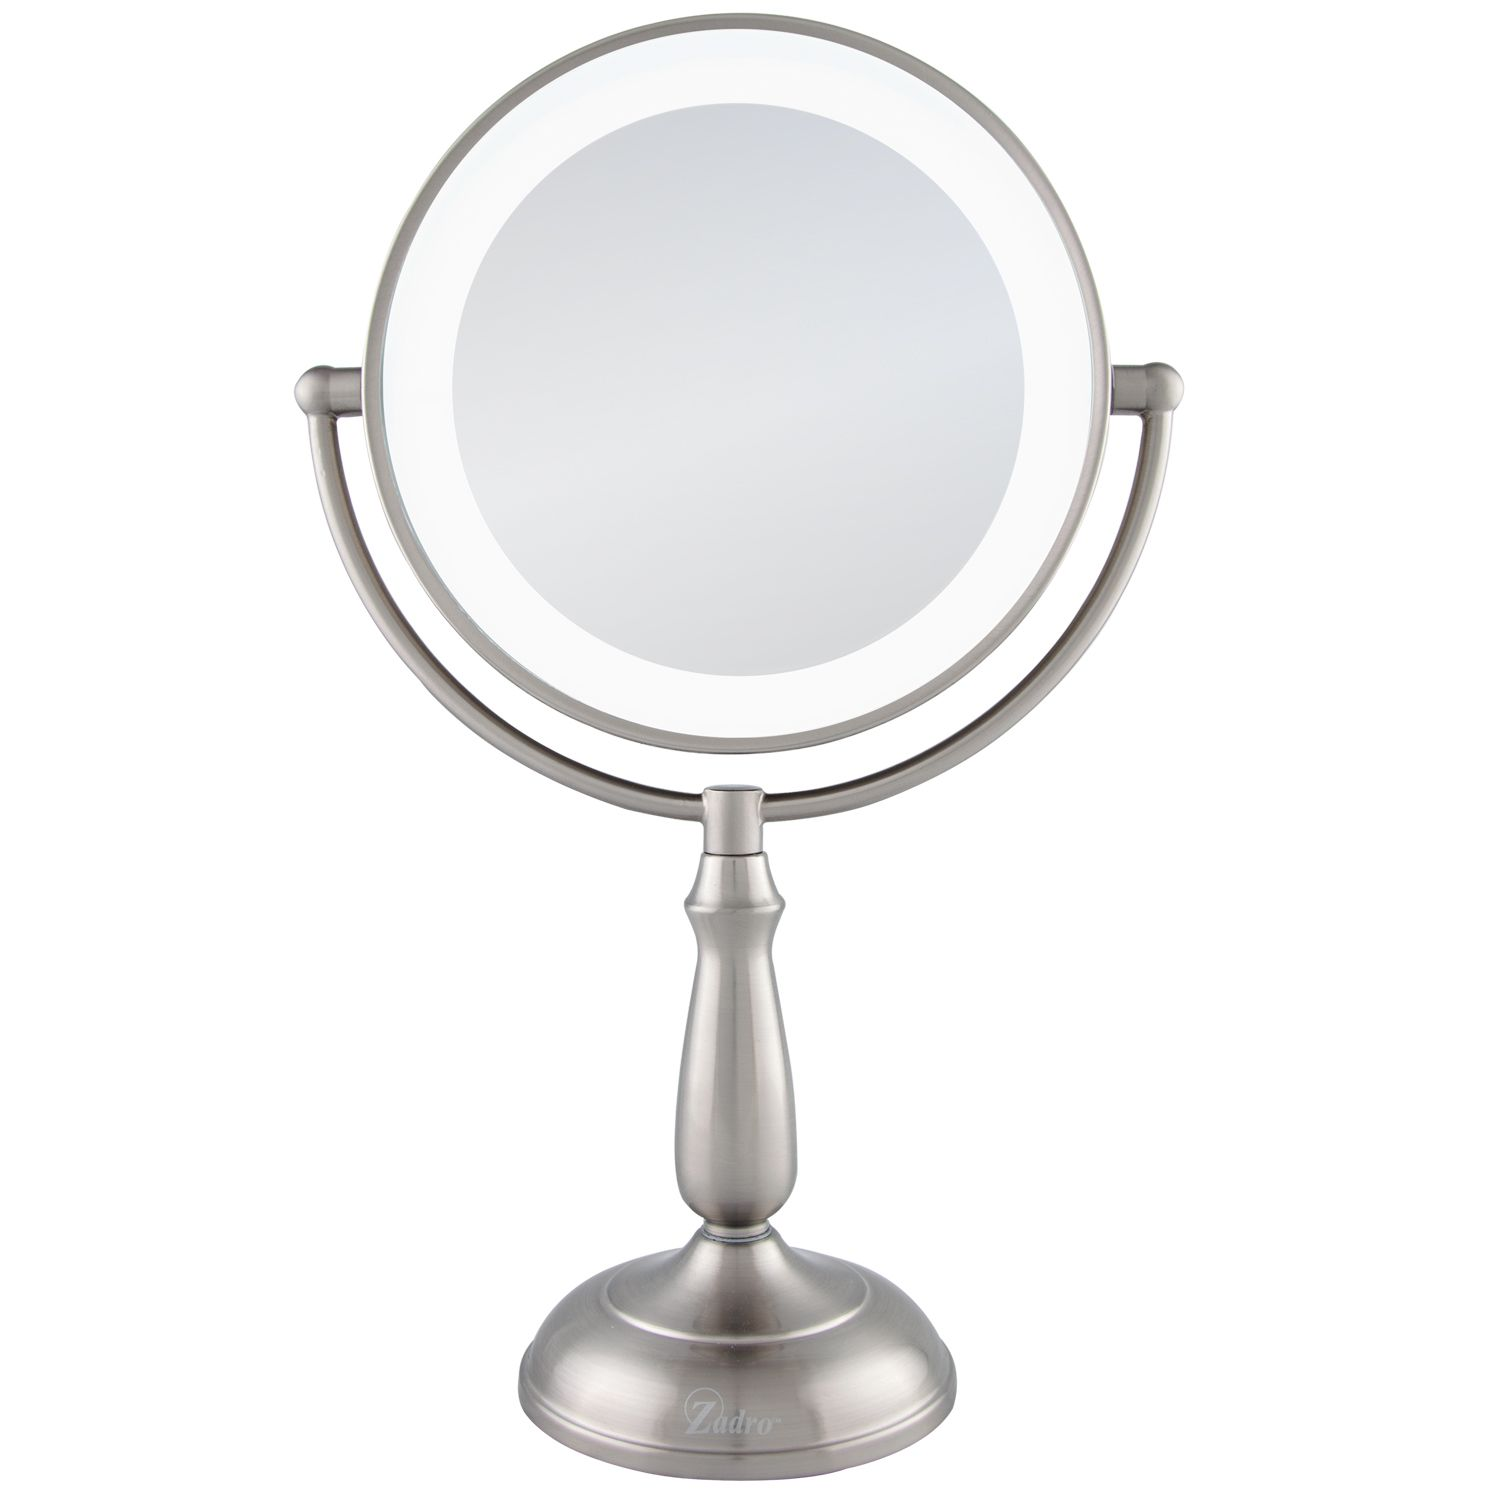 Zadro LEDVPRT412 12x/1x Satin Nickel Ultra Bright LED Lighted Touch Vanity Mirror at Sears.com